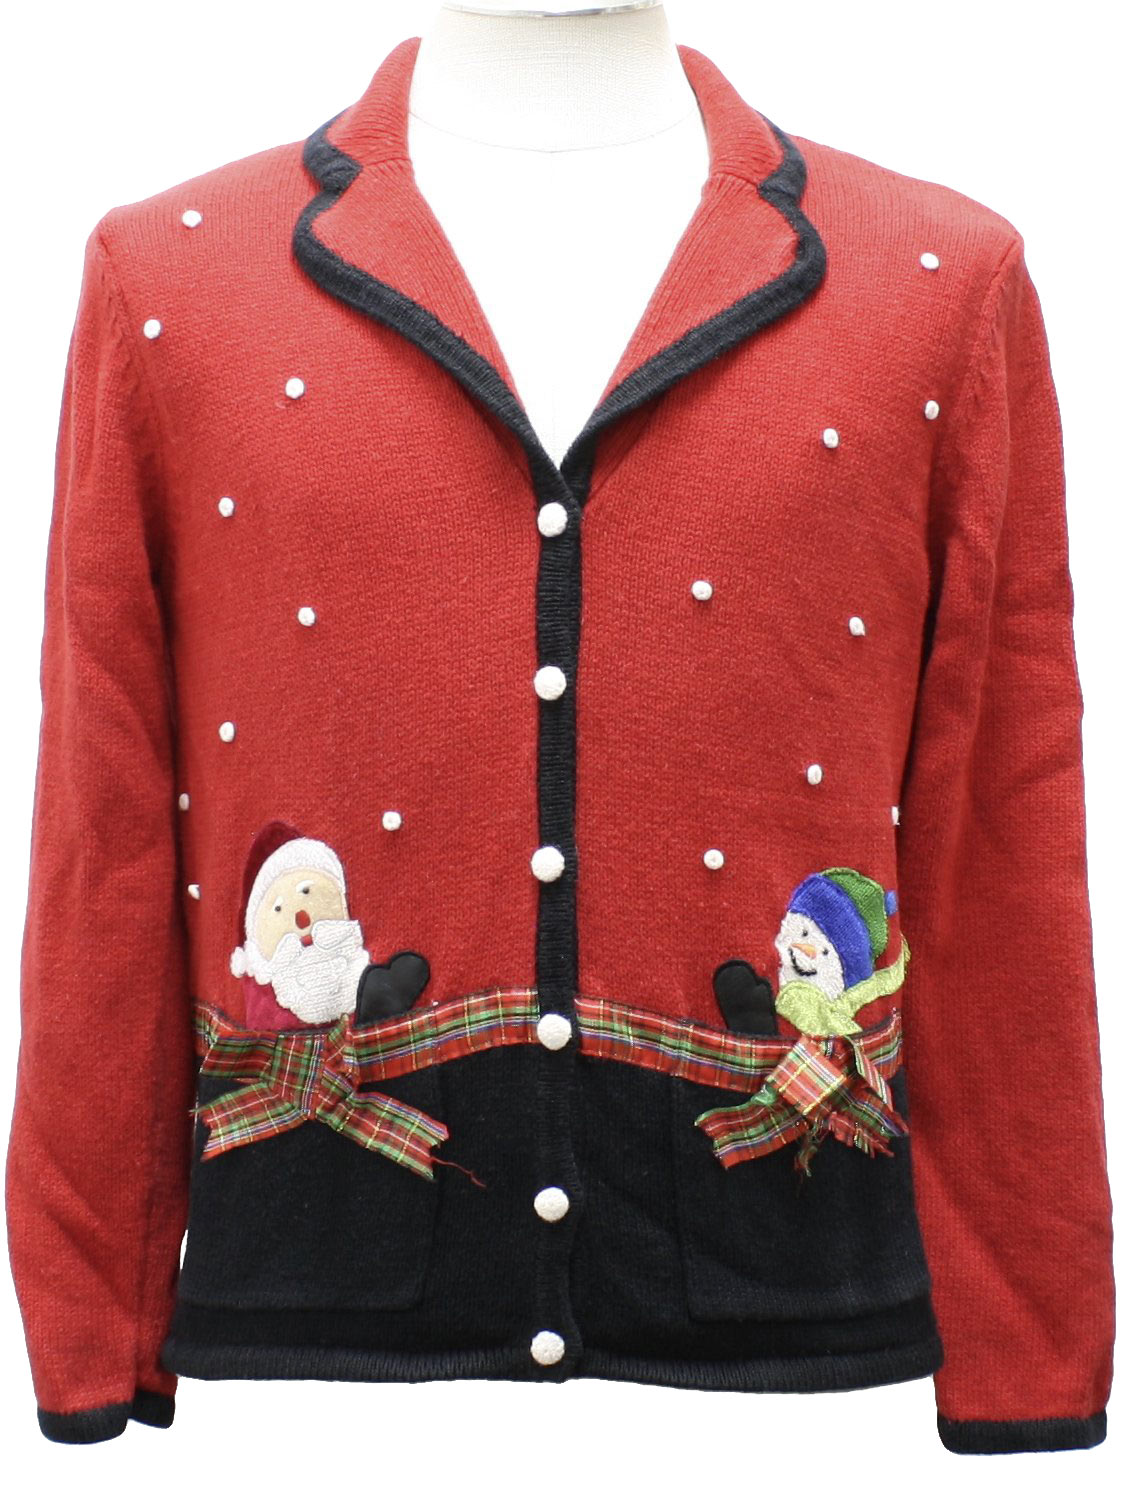 Womens ugly christmas sweater studio womens red for Over the top ugly christmas sweaters